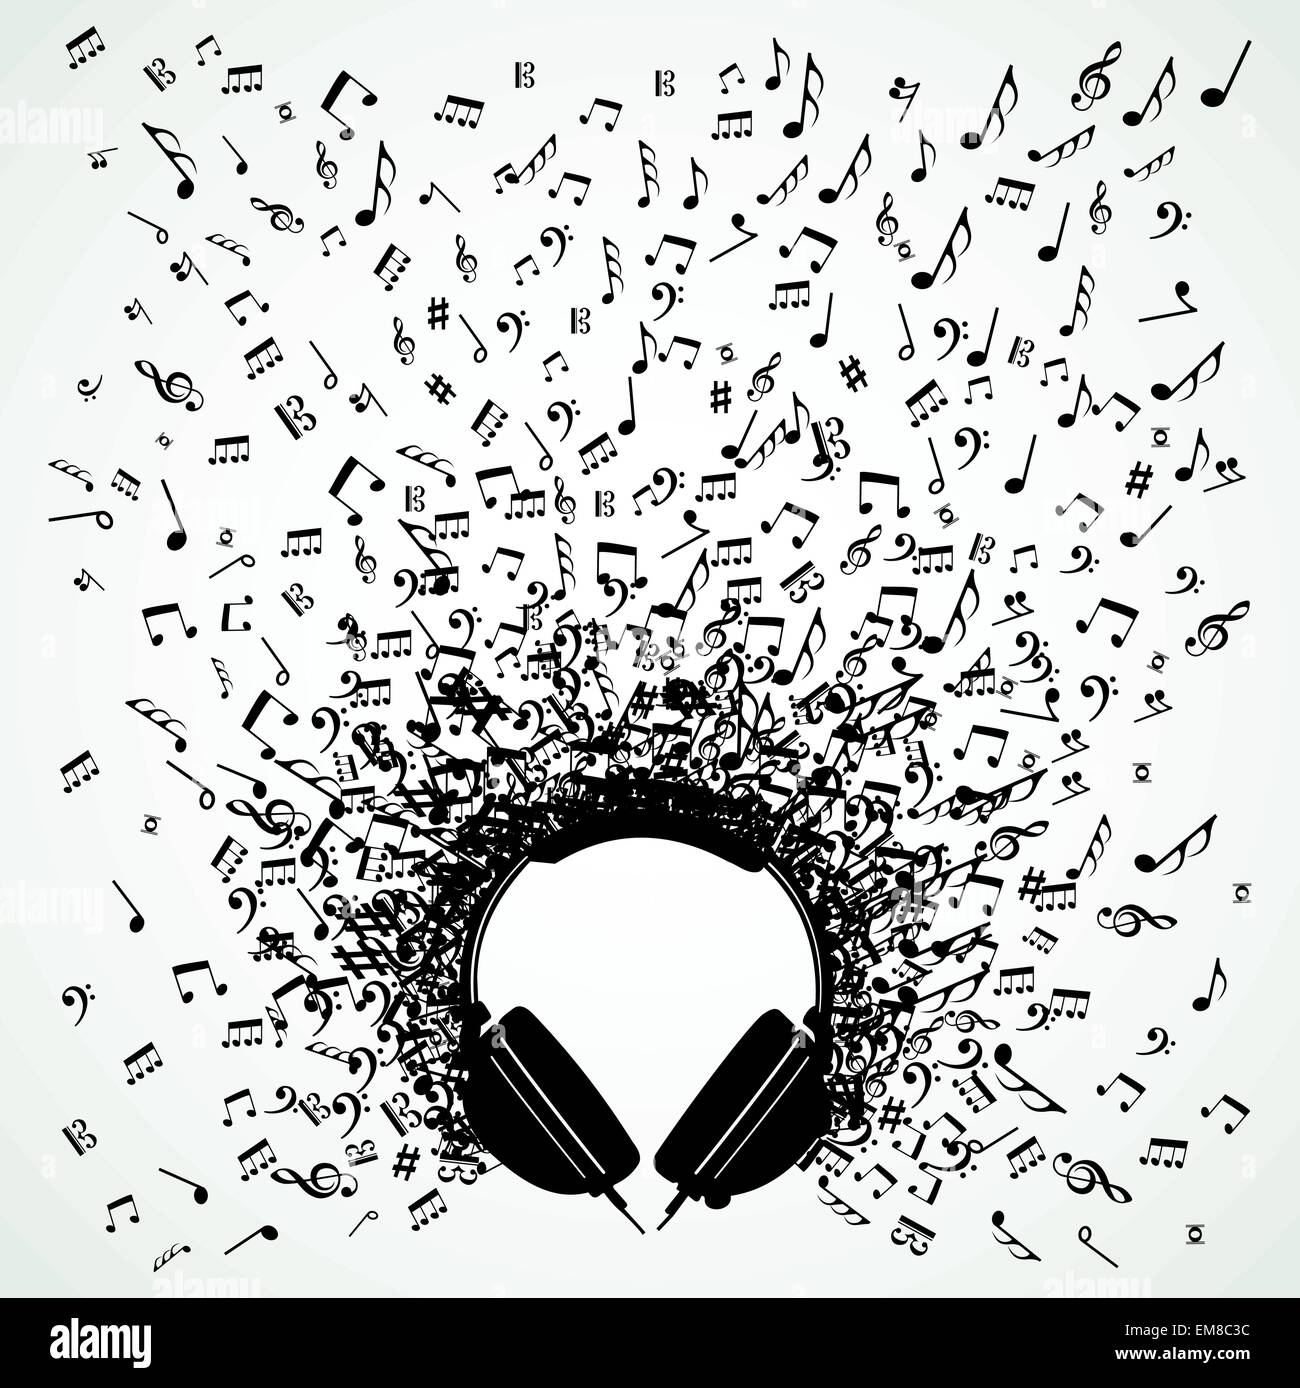 Music Notes From Headphones Isolated Design Stock Vector Art